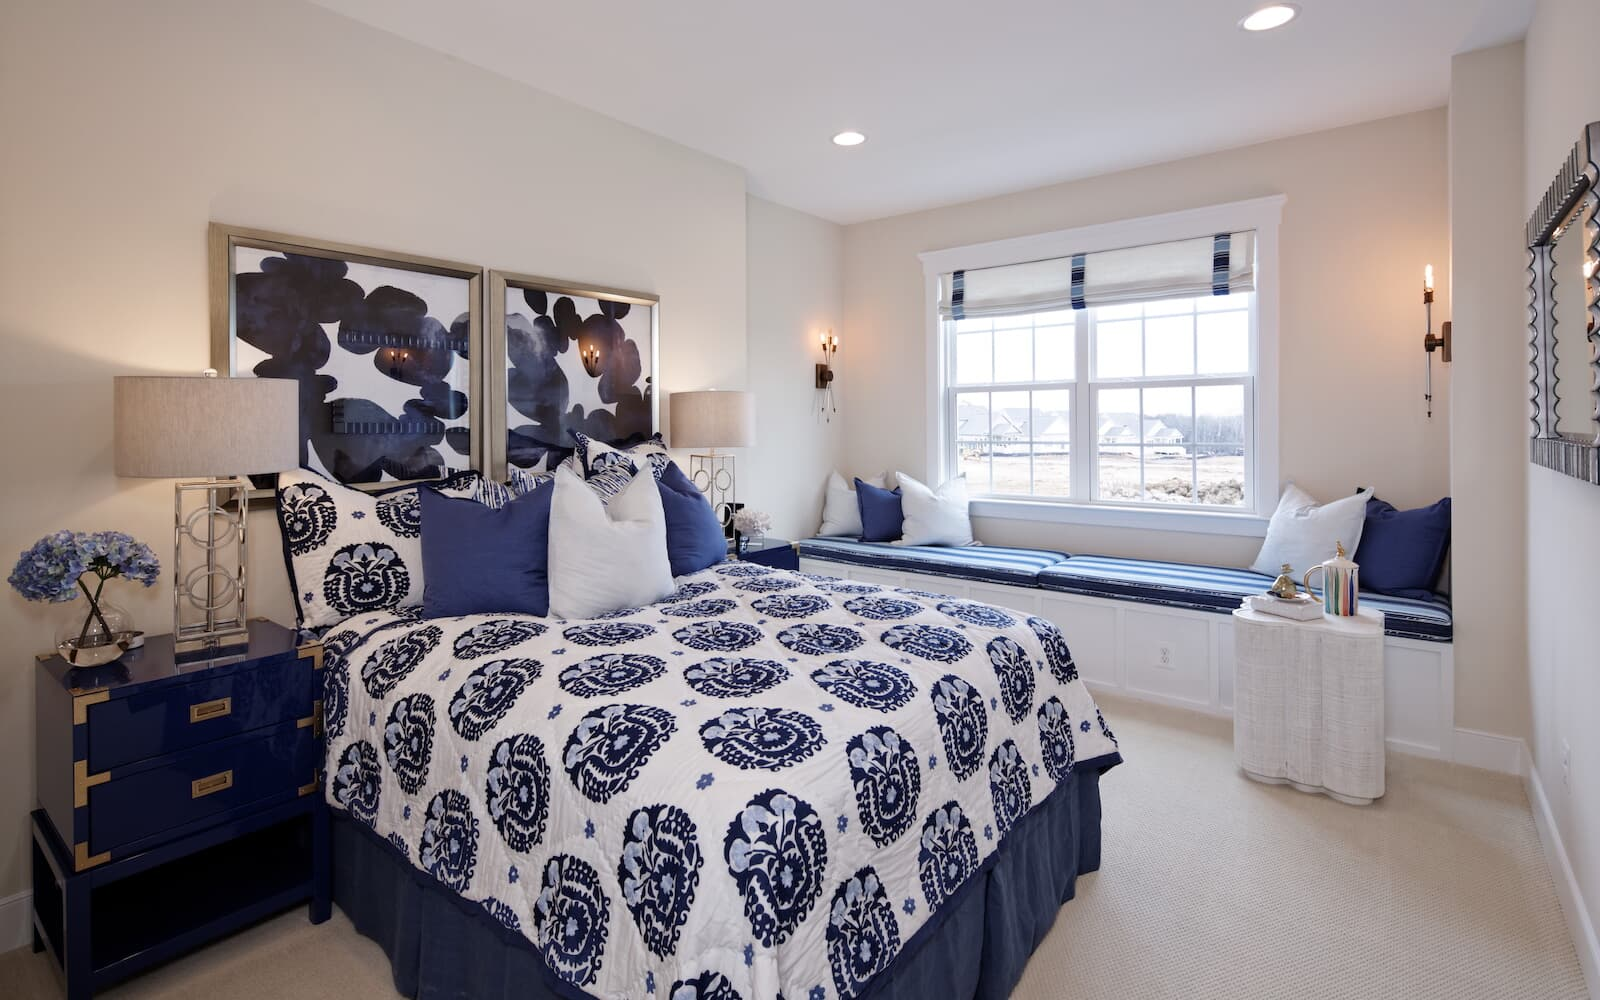 Kensington-bedroom2-single-family-home-round-hill-va-the-bluffs-at-sleeter-lake-brookfield-residential